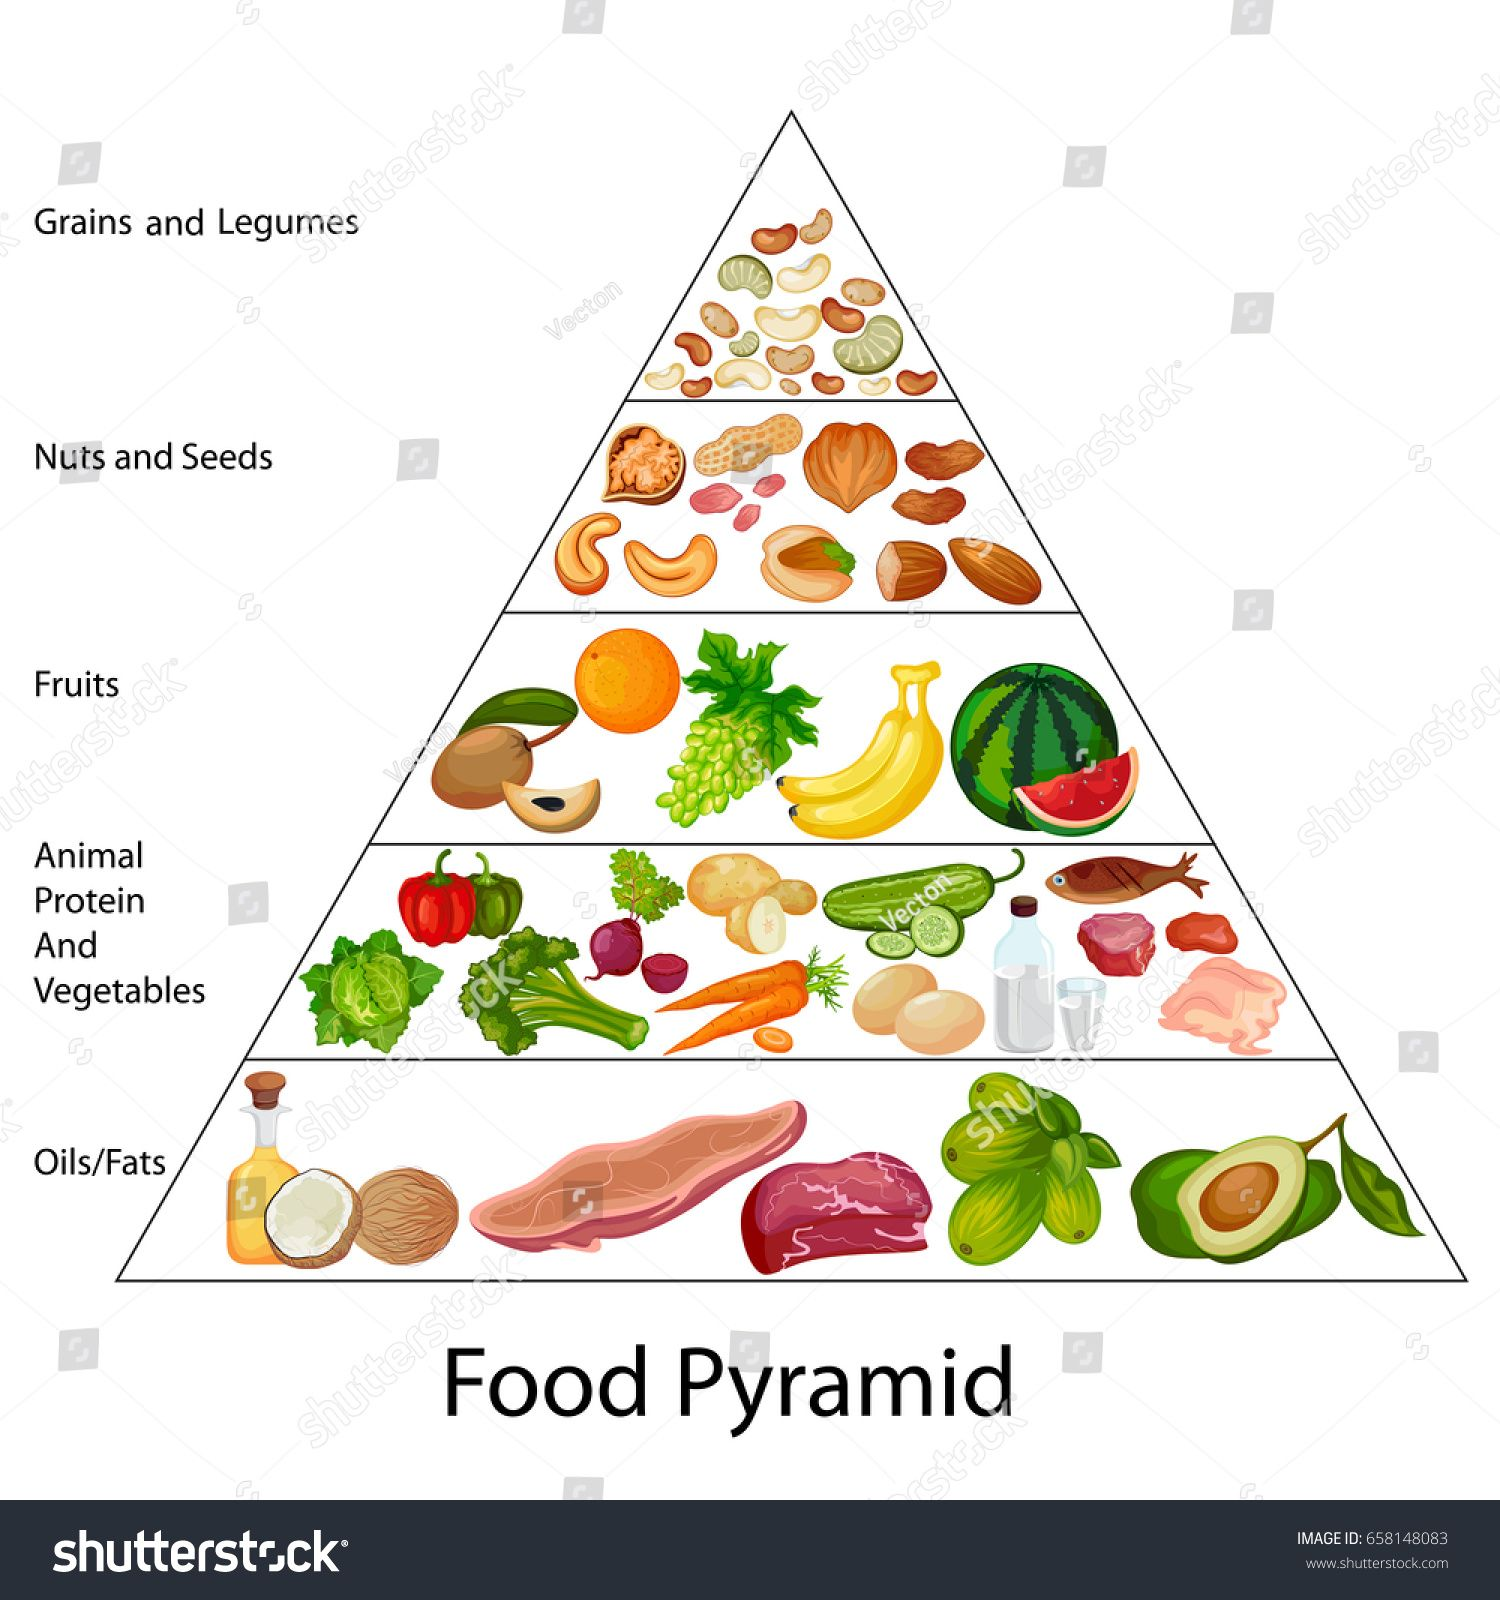 Education Chart Of Biology For Food Pyramid Diagram Vector Illustration Sponsored Sponsored Biology Food Educ Food Pyramid Food Education Animal Protein